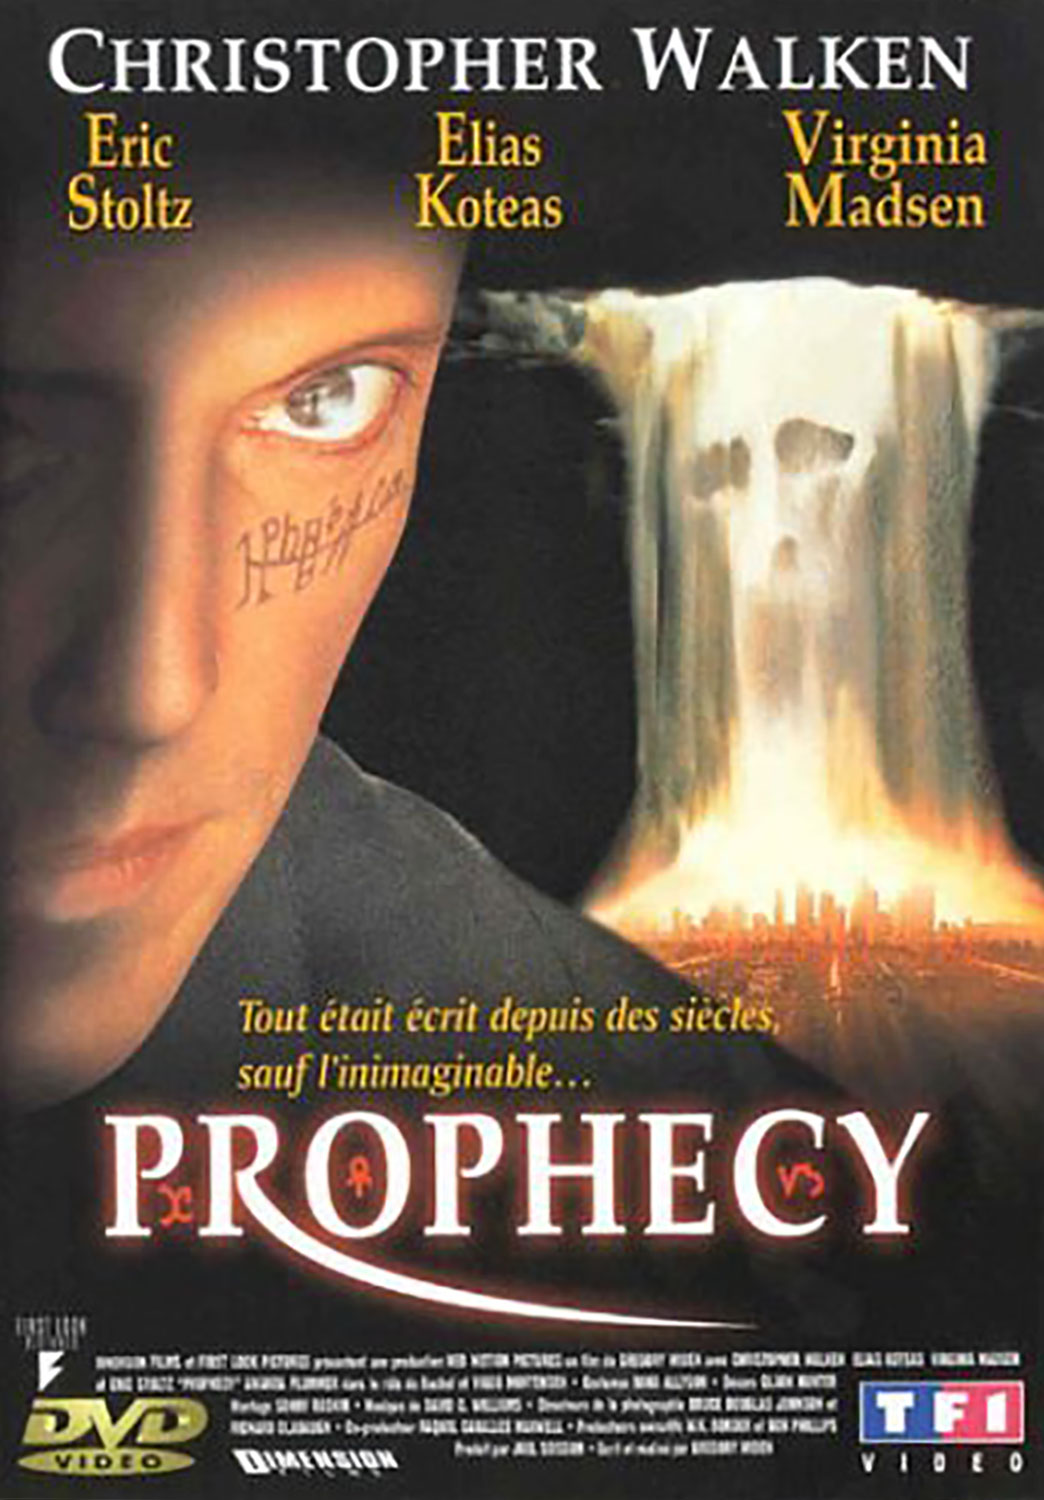 Affiche Poster prophecy disney dimension